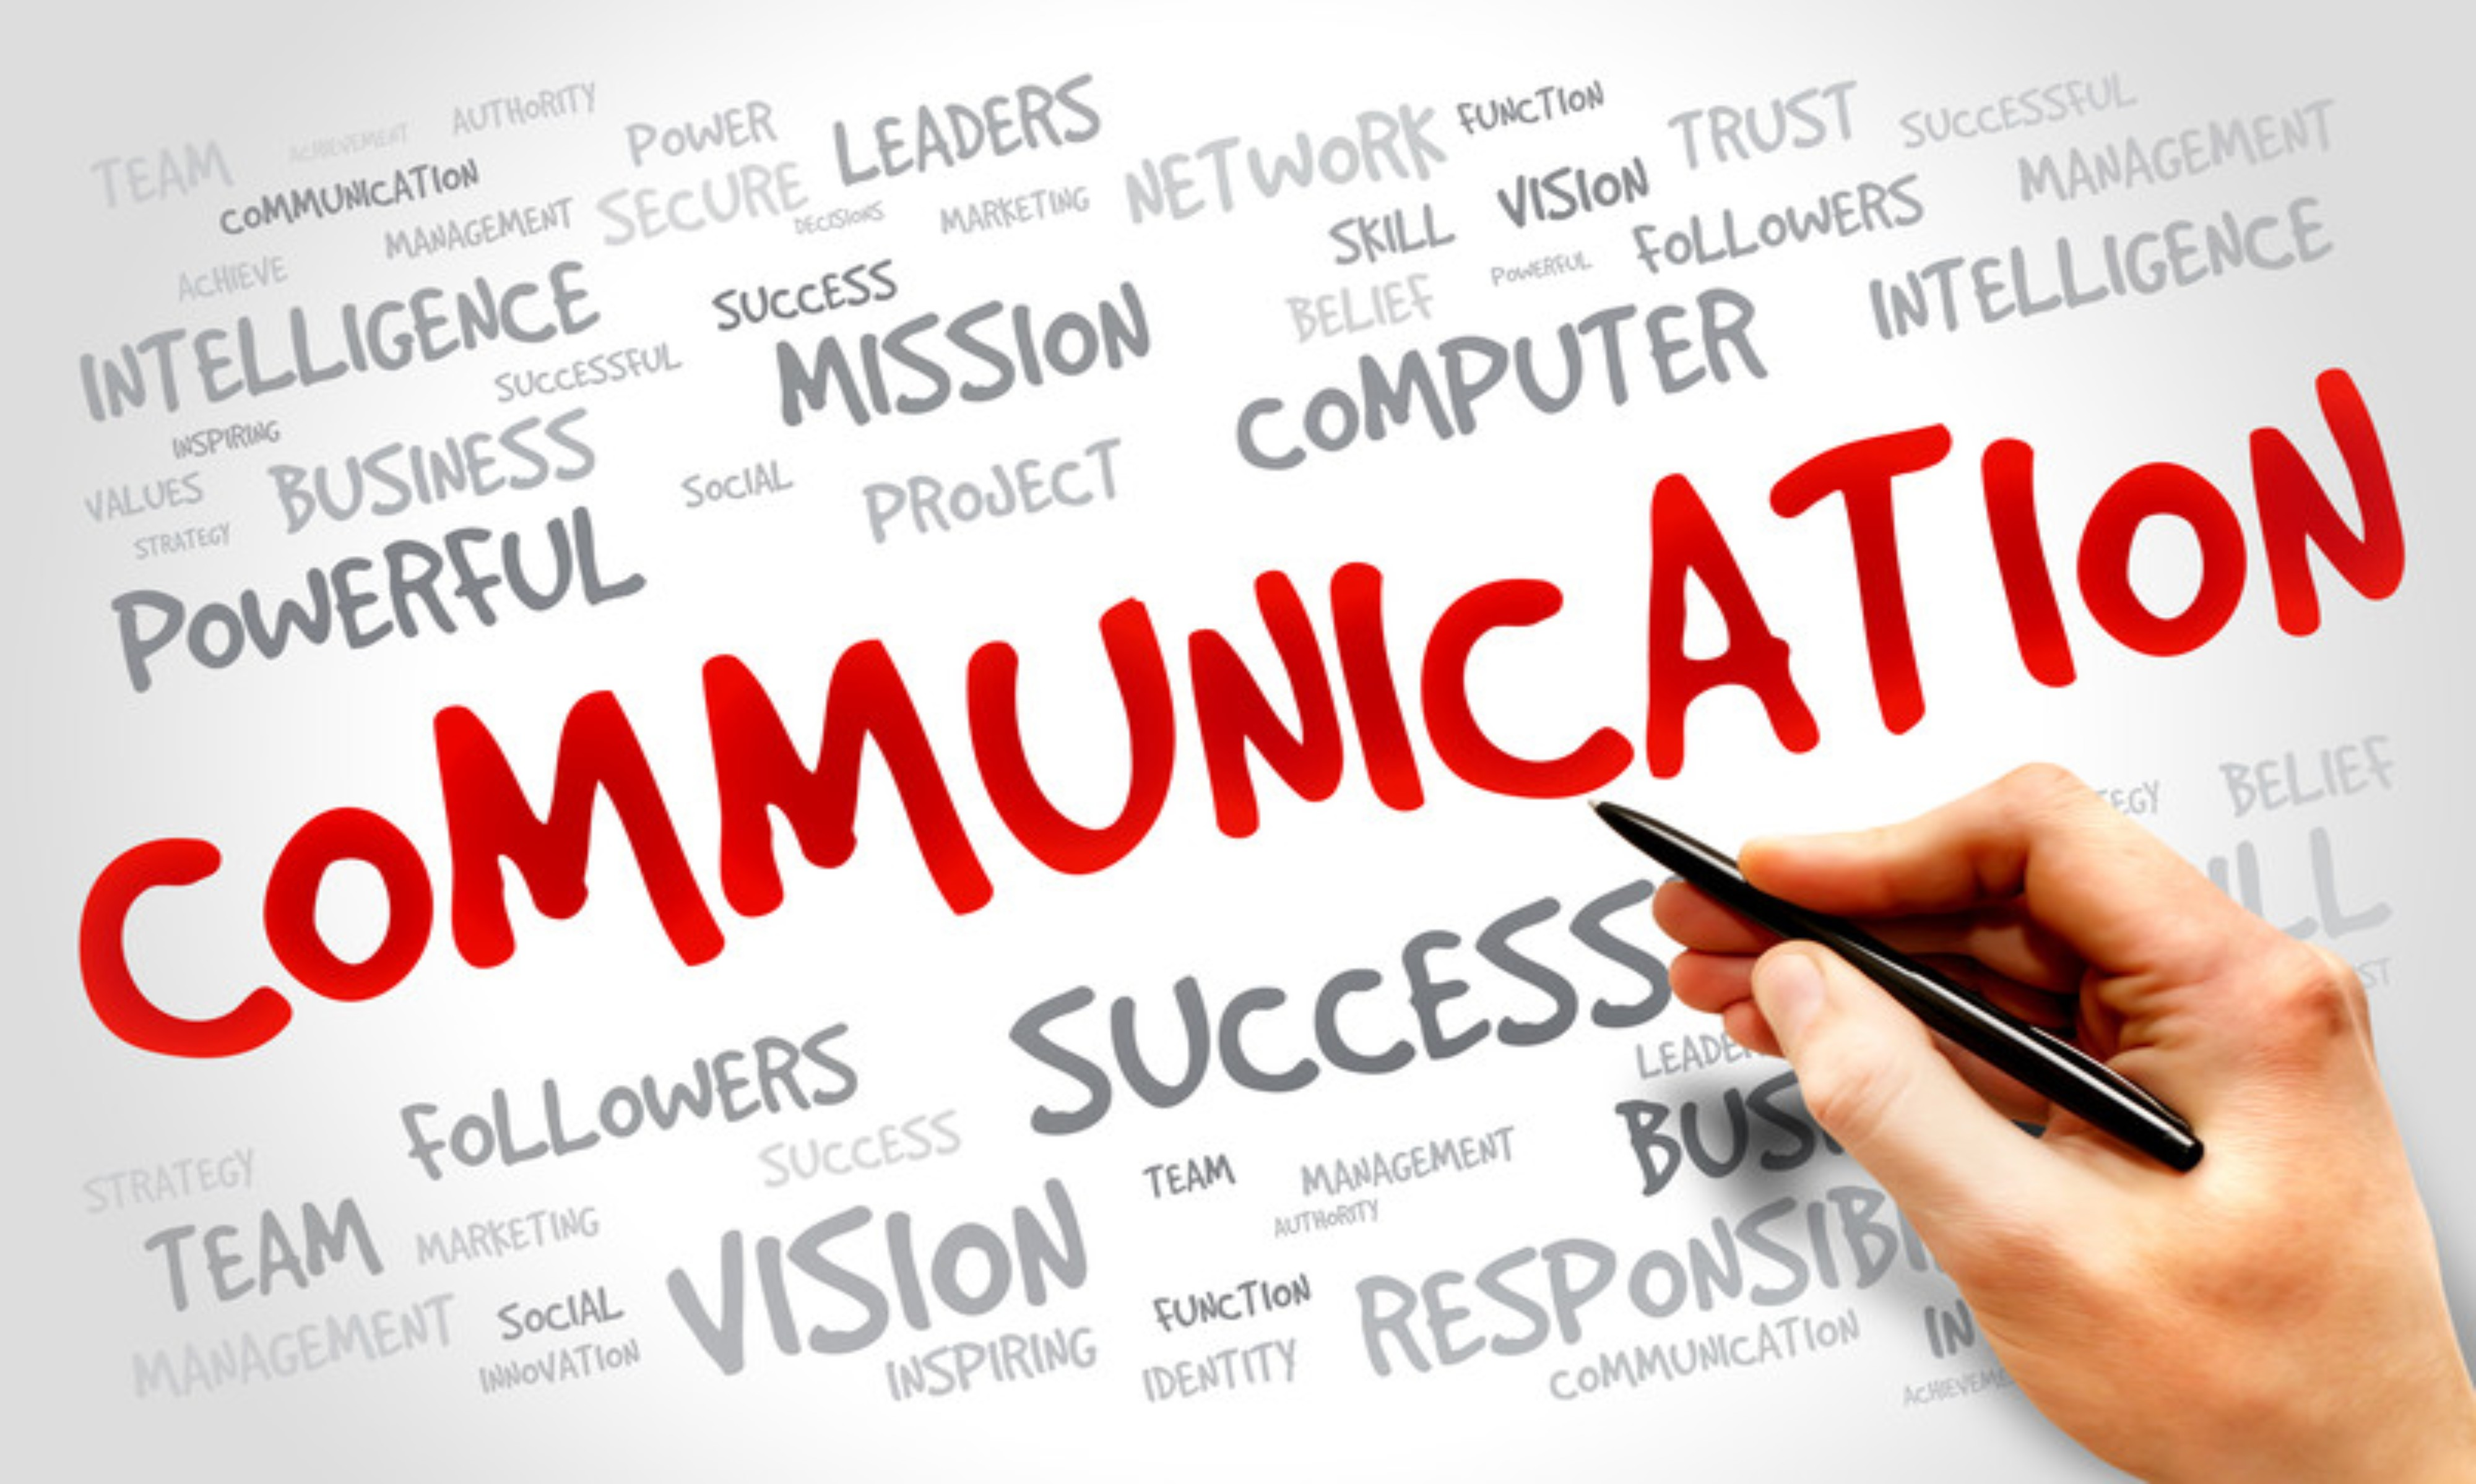 why communication holds so much importance